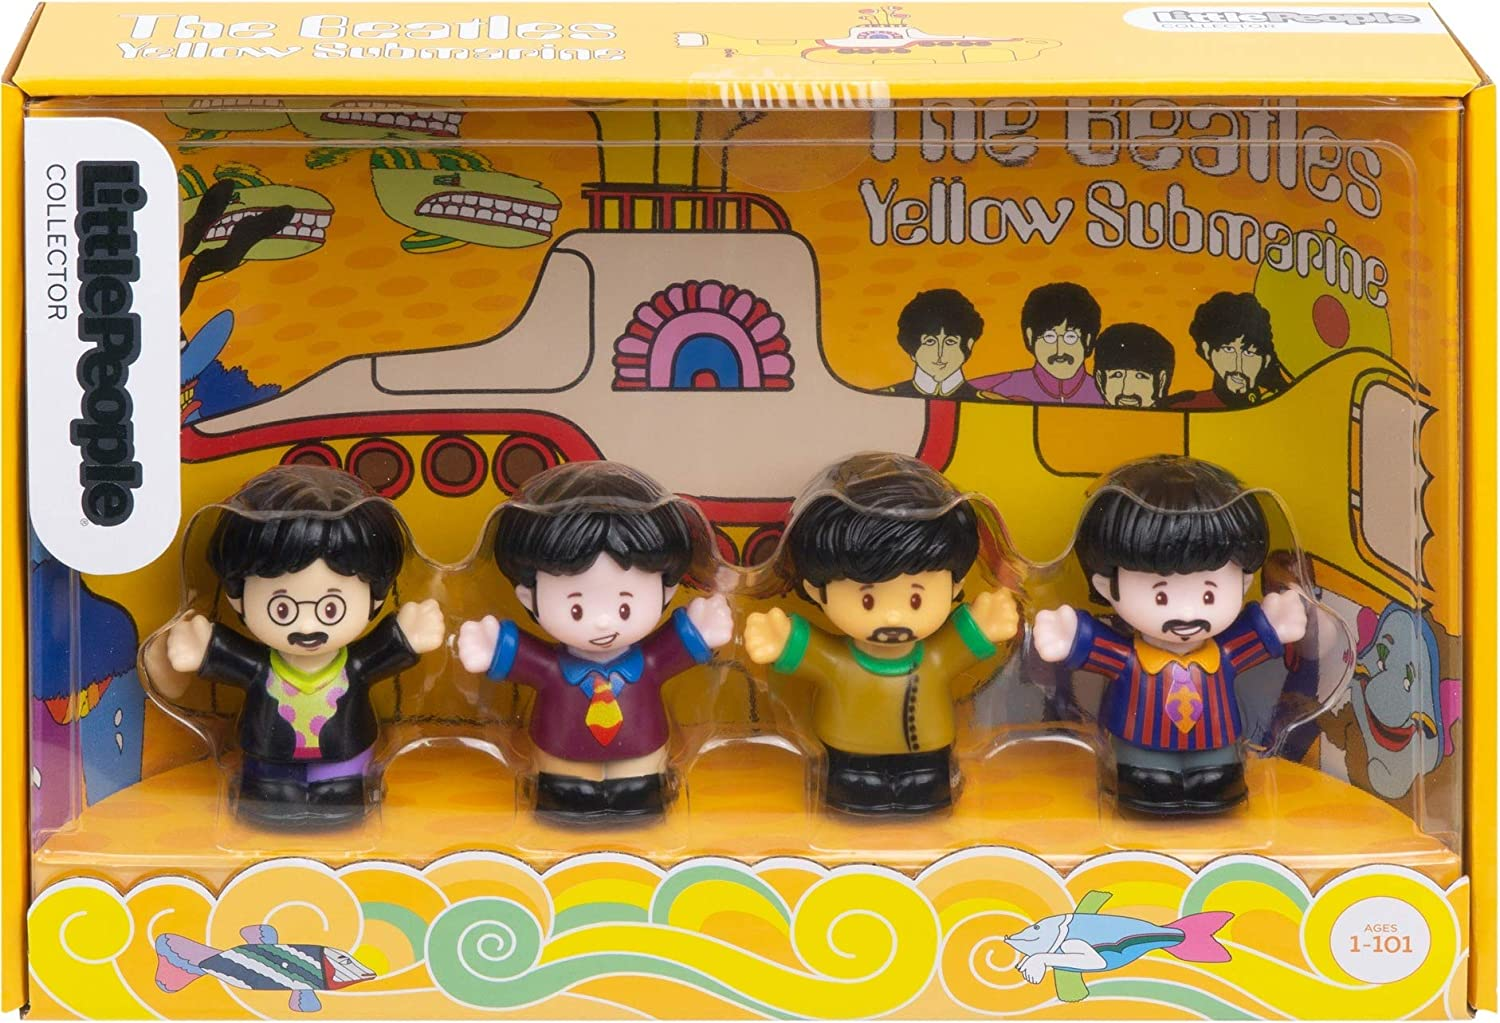 Fisher-Price The Beatles Yellow Submarine by Little People,Multi Color